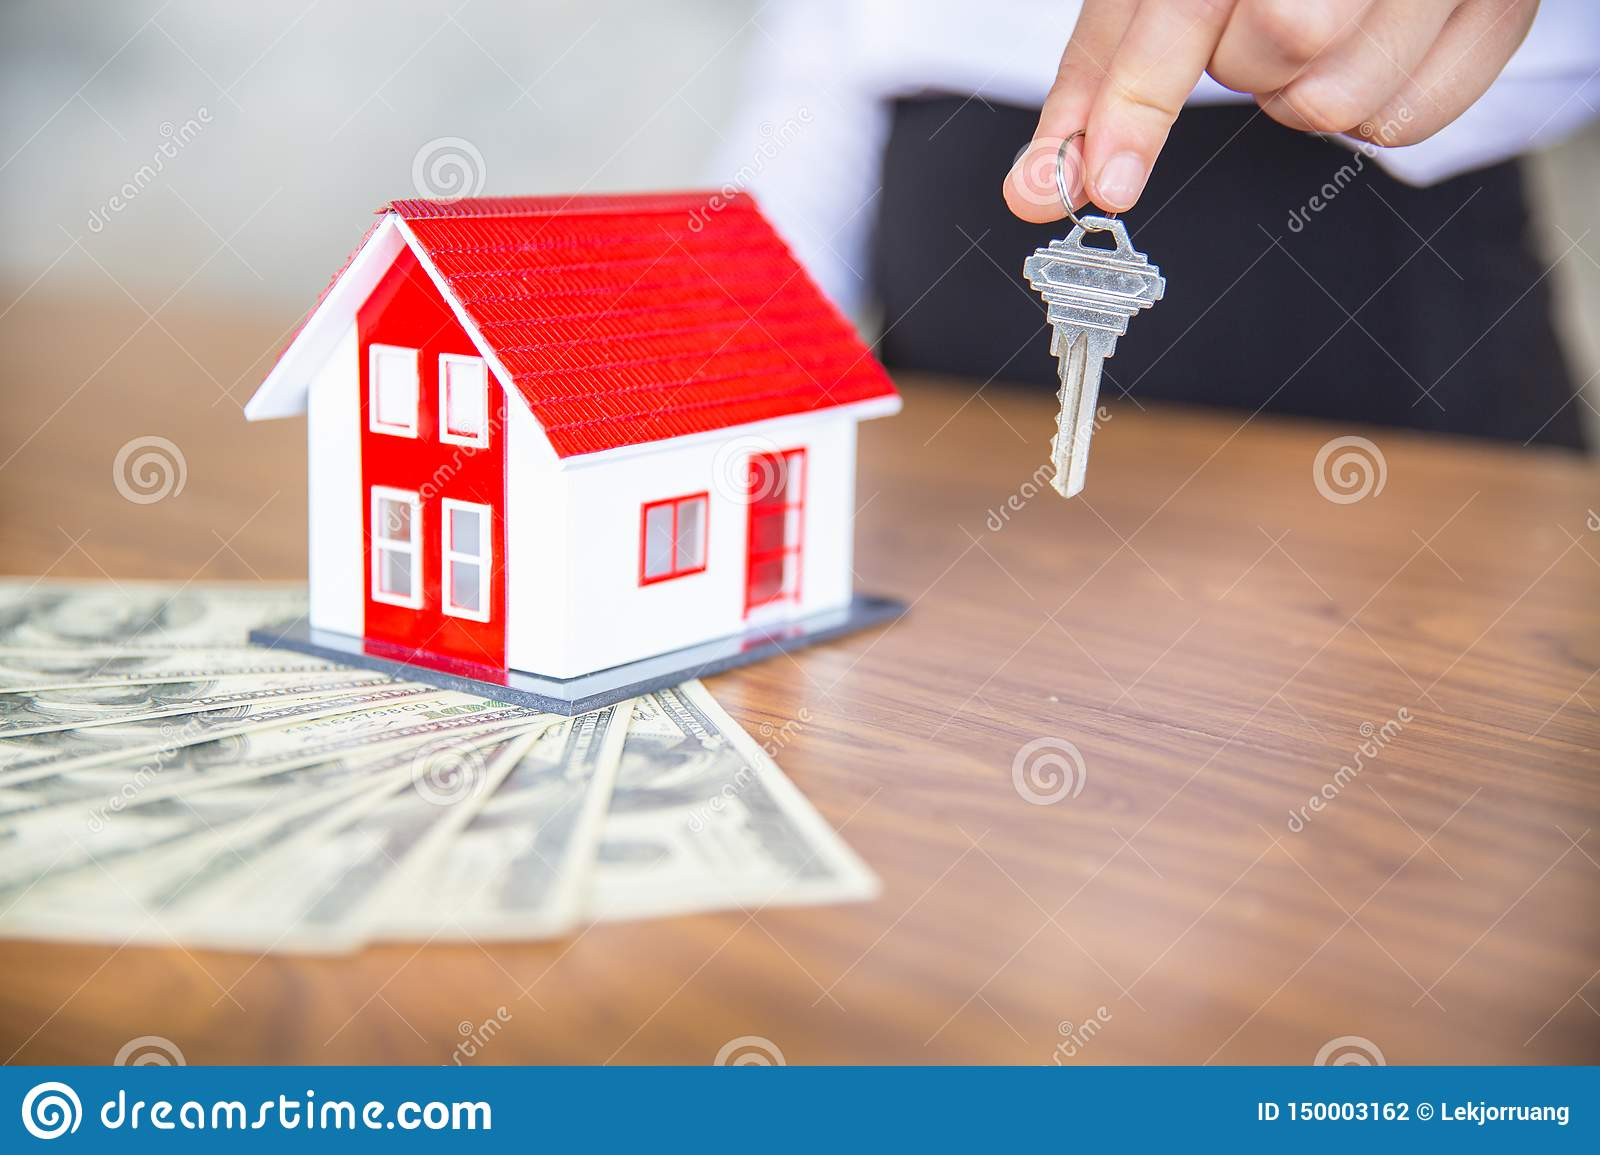 Your new house, woman hands holding a model house and key. Mortgage property insurance dream moving home and real estate concept